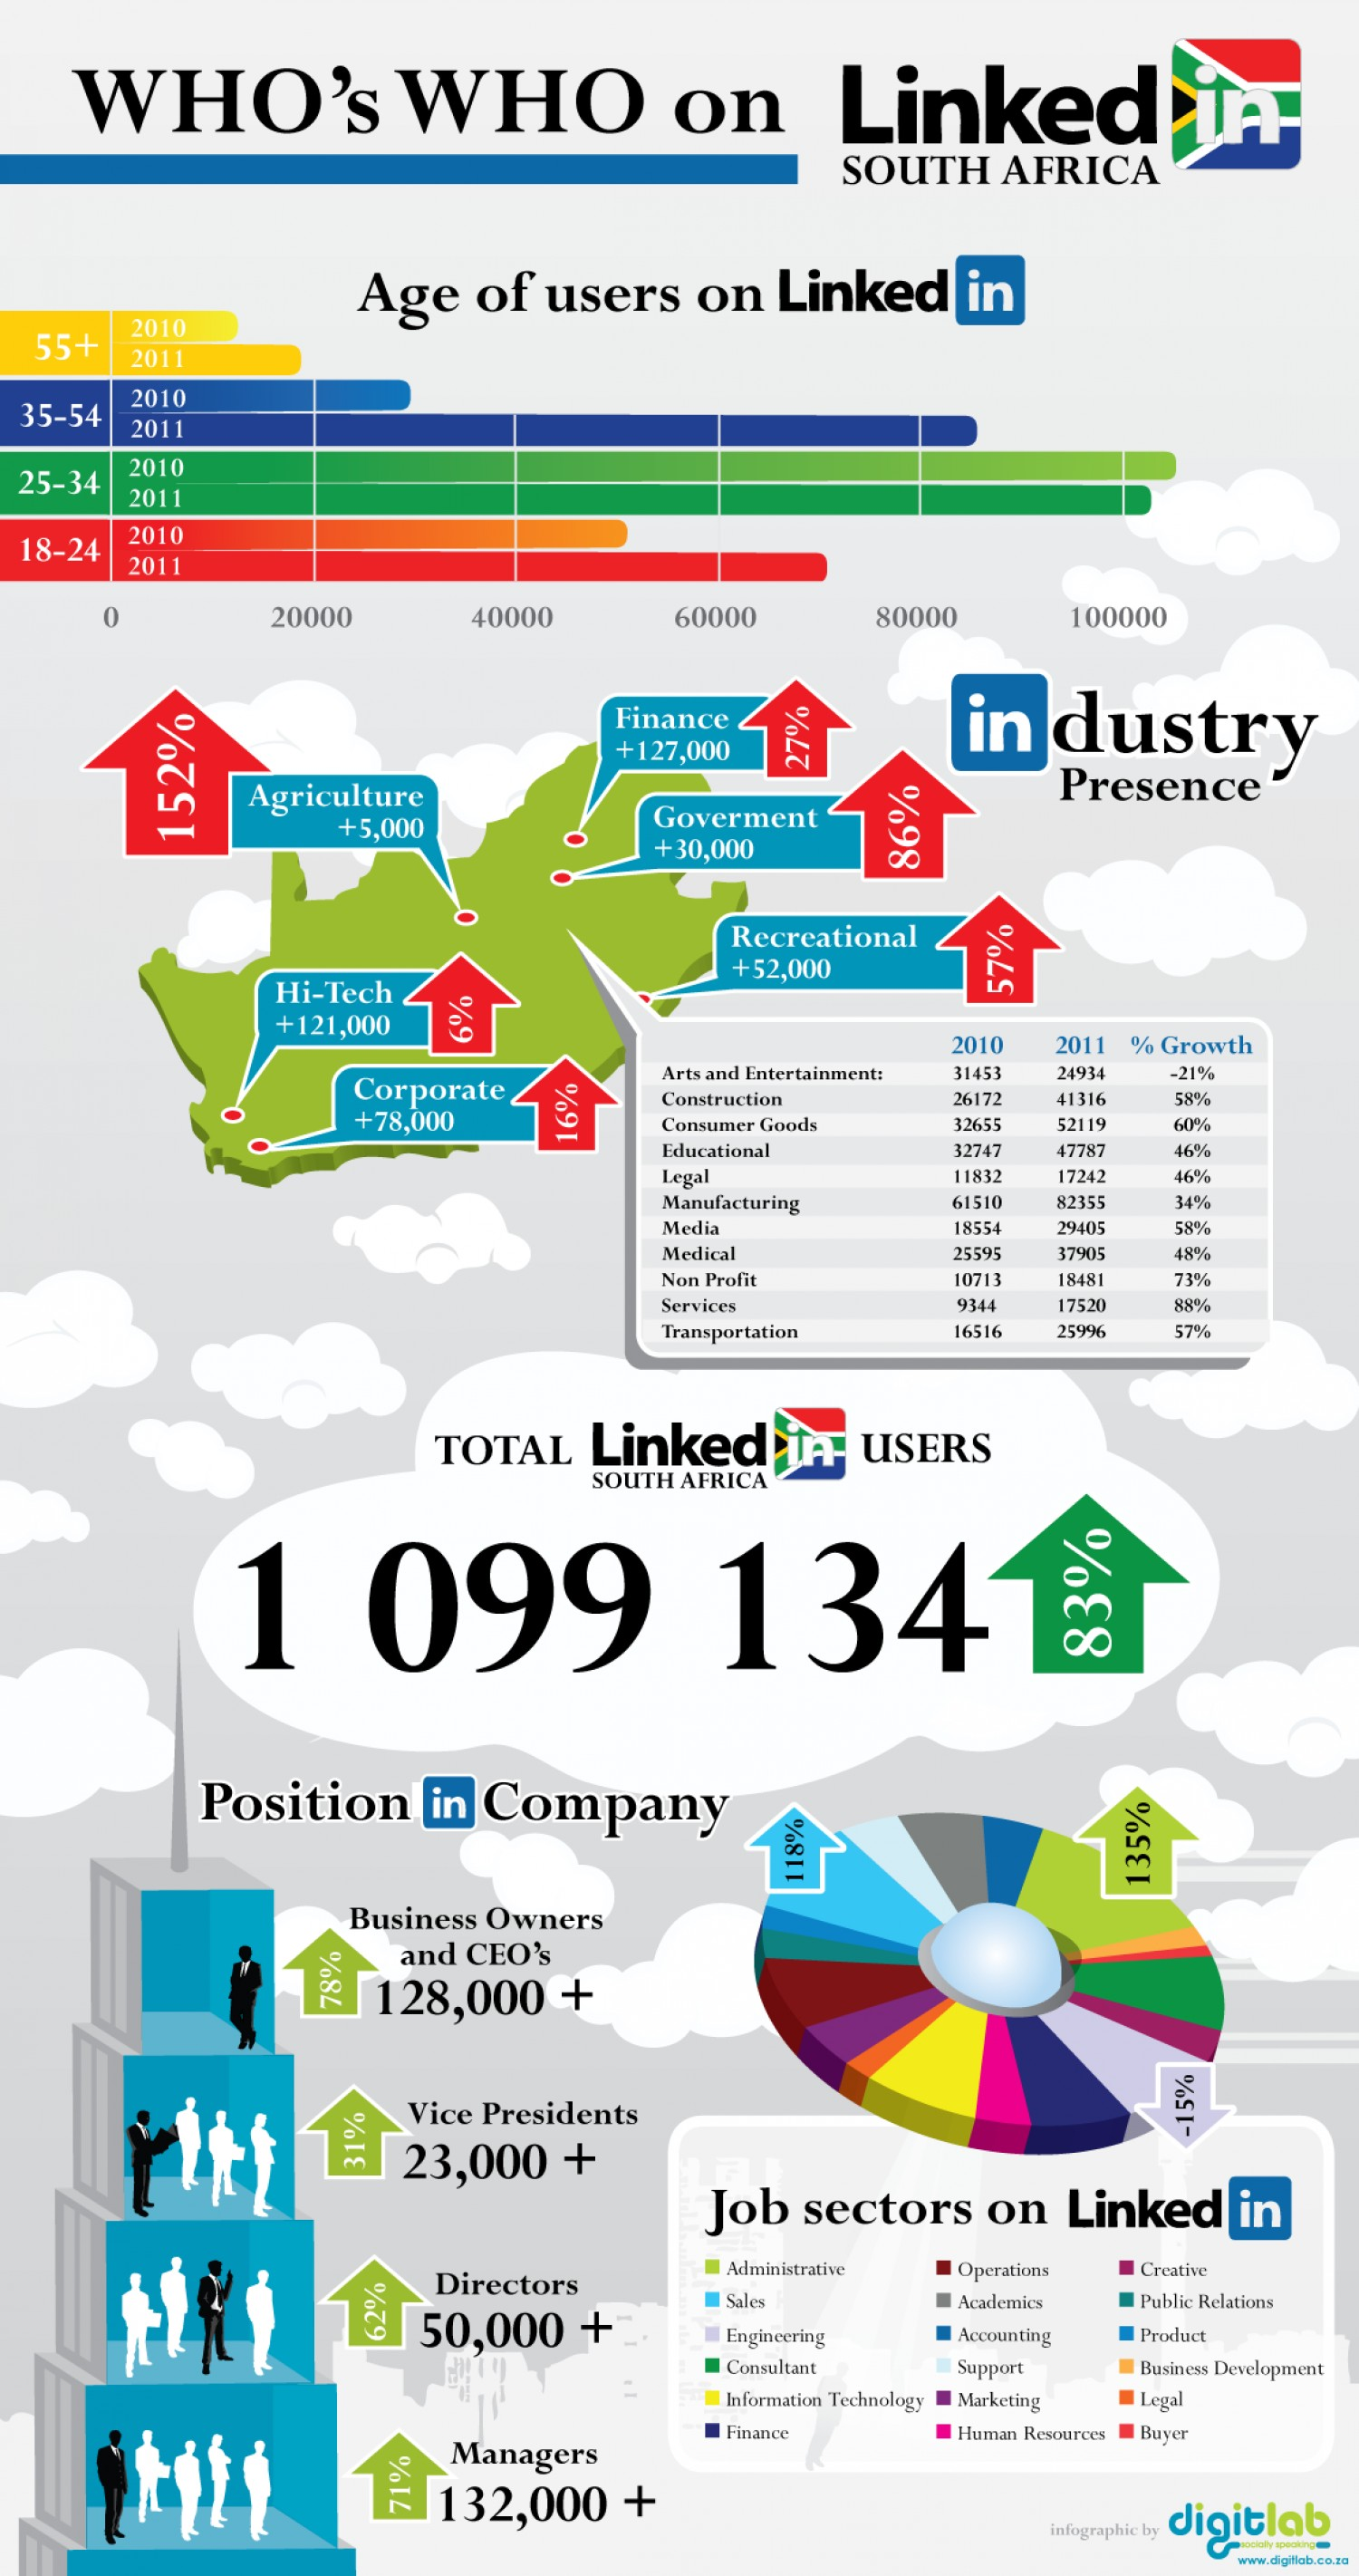 2. Who's Who on Linkedin in South Africa